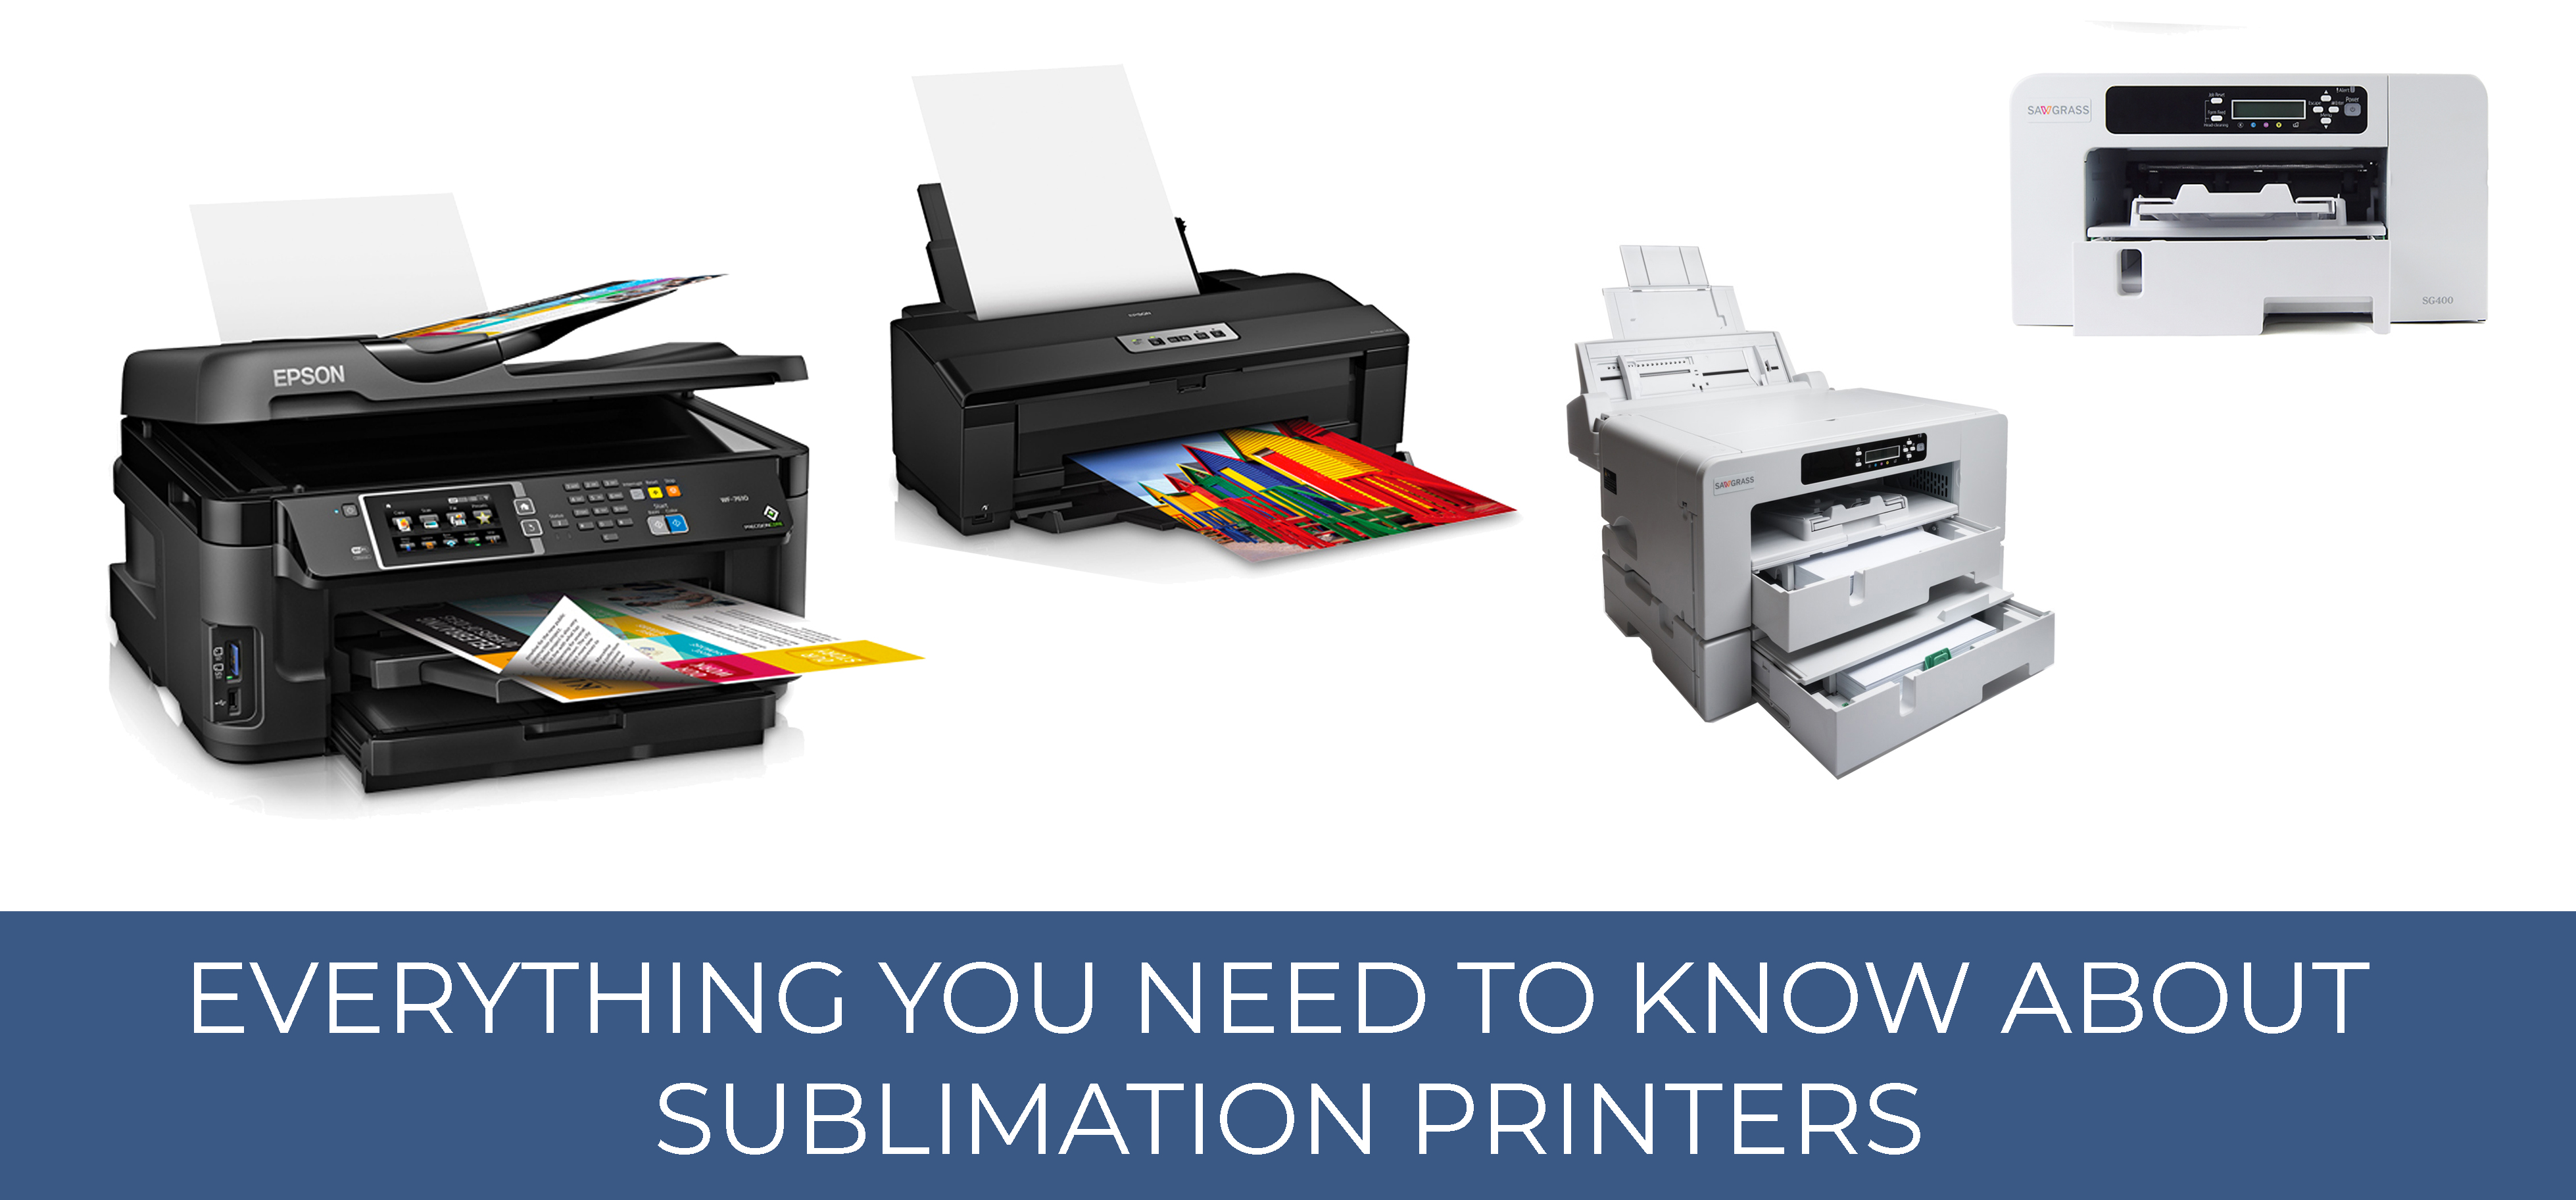 Everything You Need To Know About Sublimation Printers